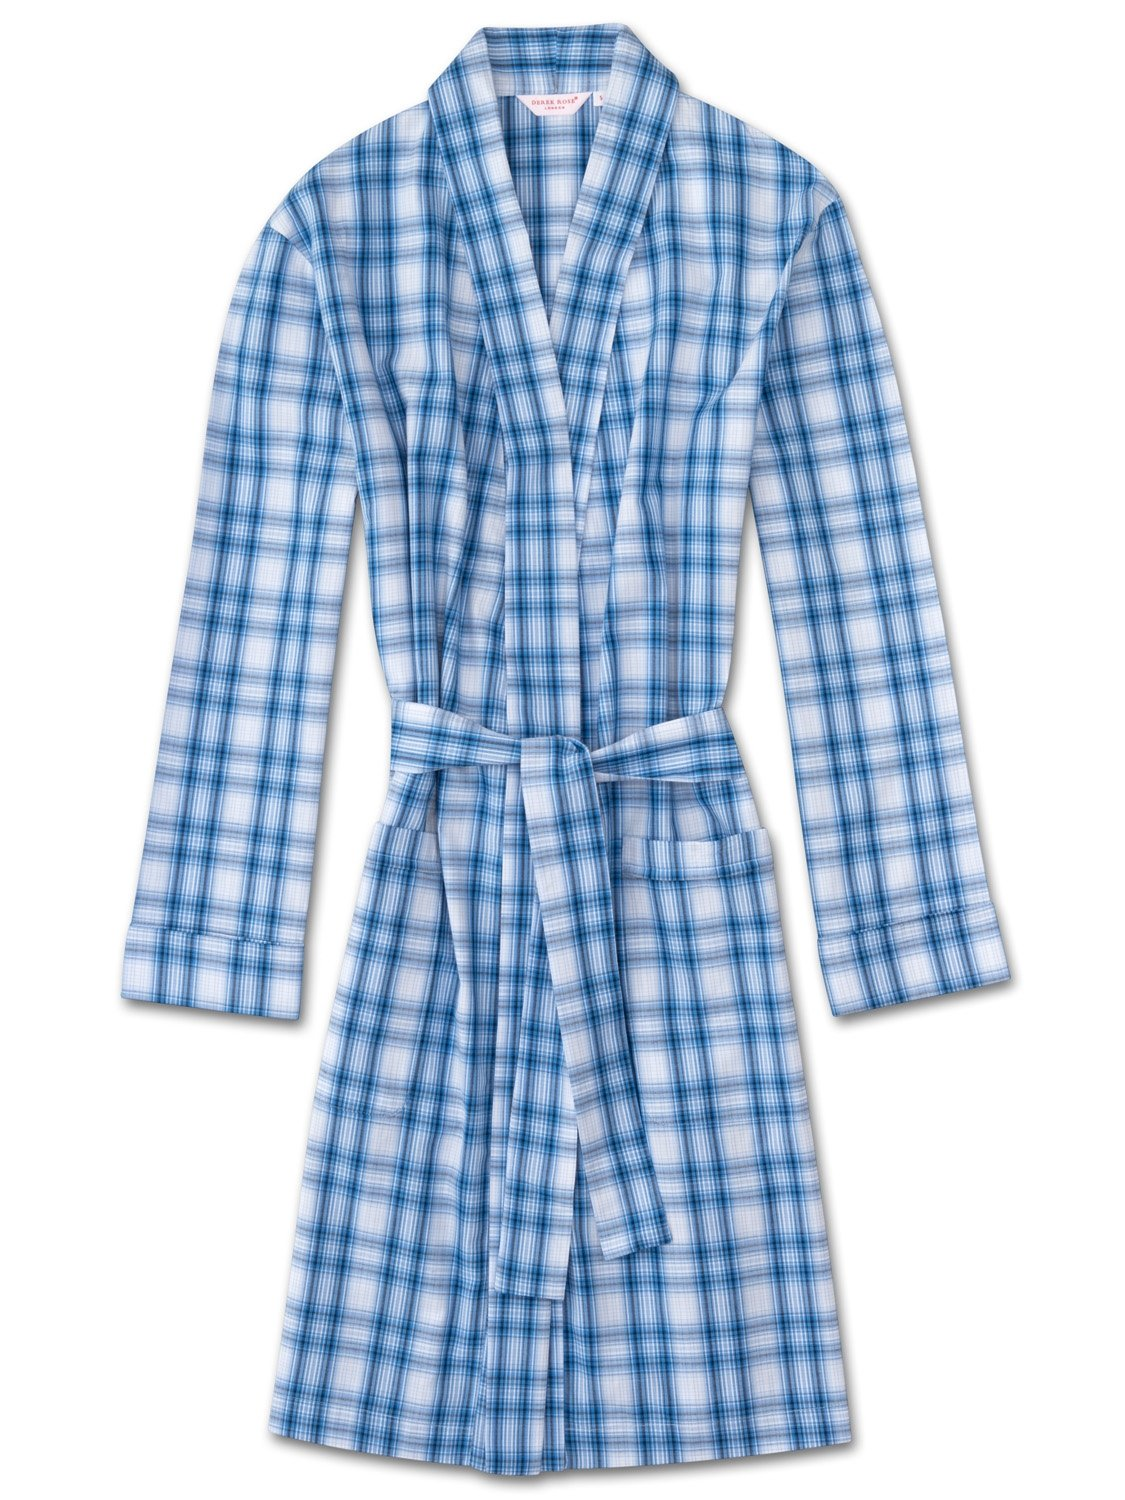 Women's Dressing Gown Ranga 30 Cotton Check Blue